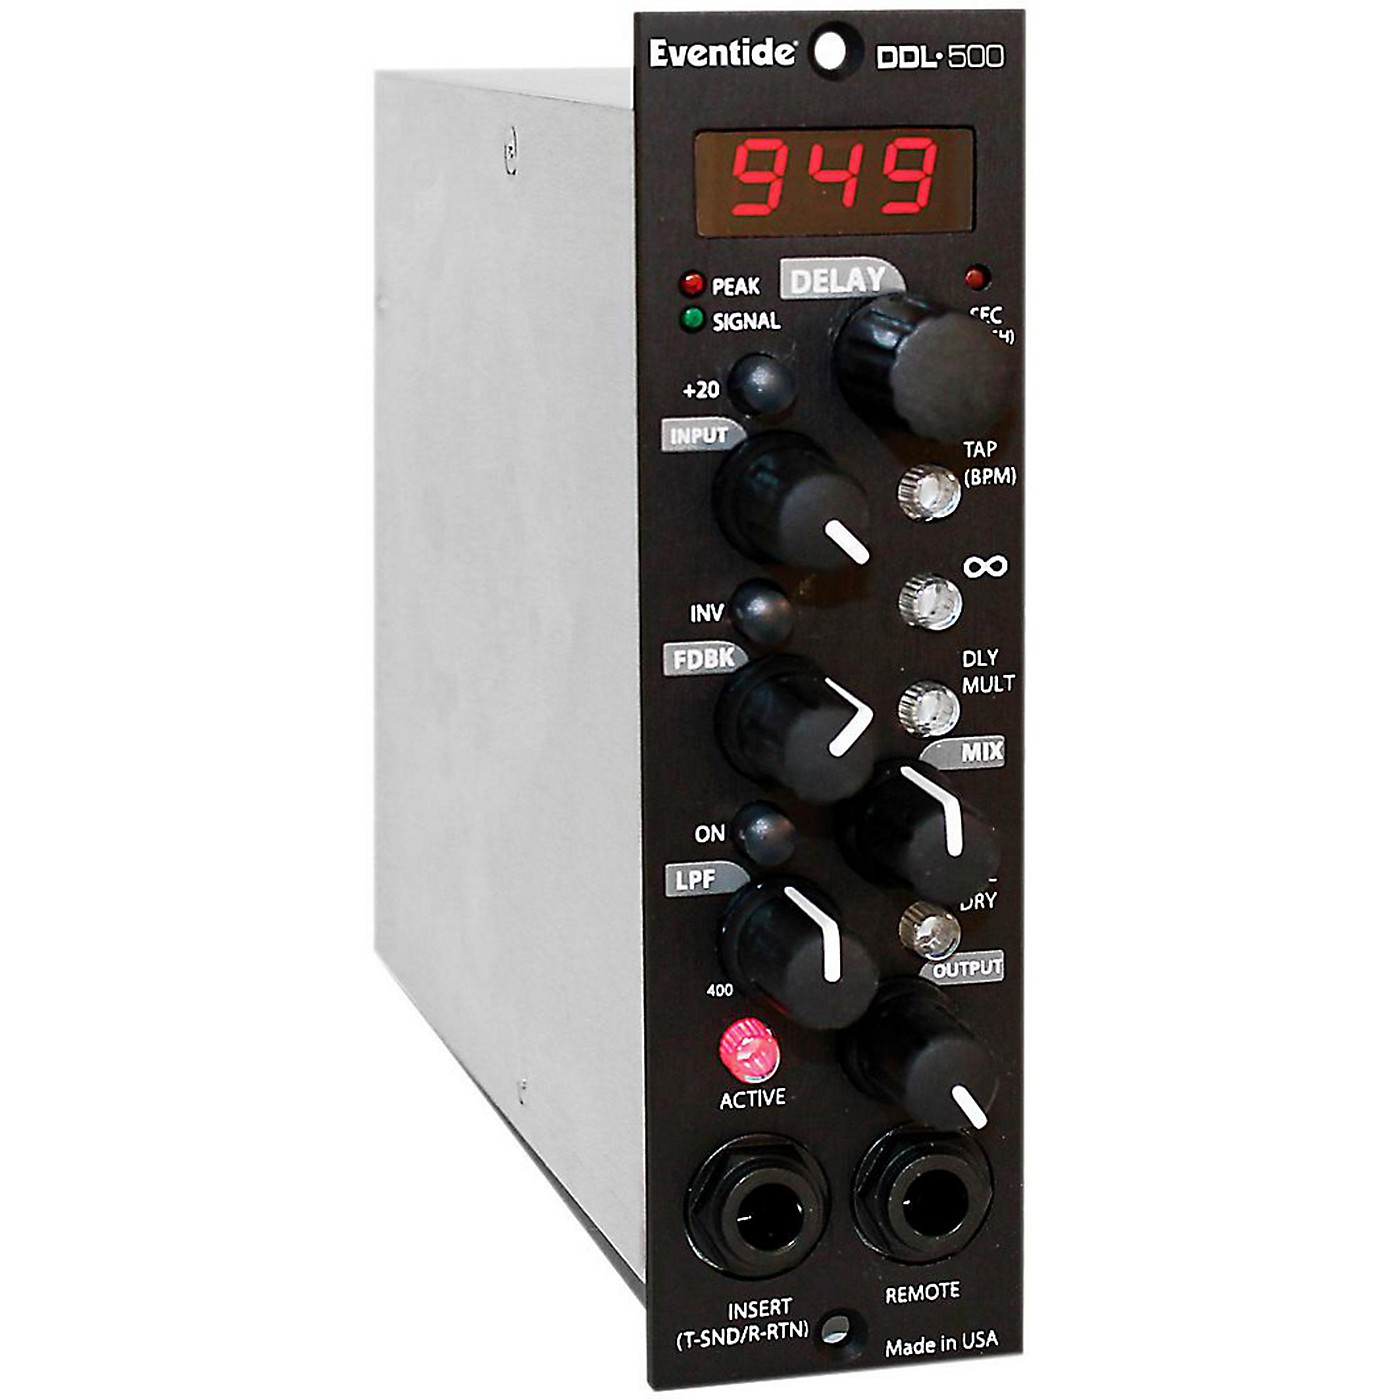 Eventide DDL-500 500 Series Delay thumbnail